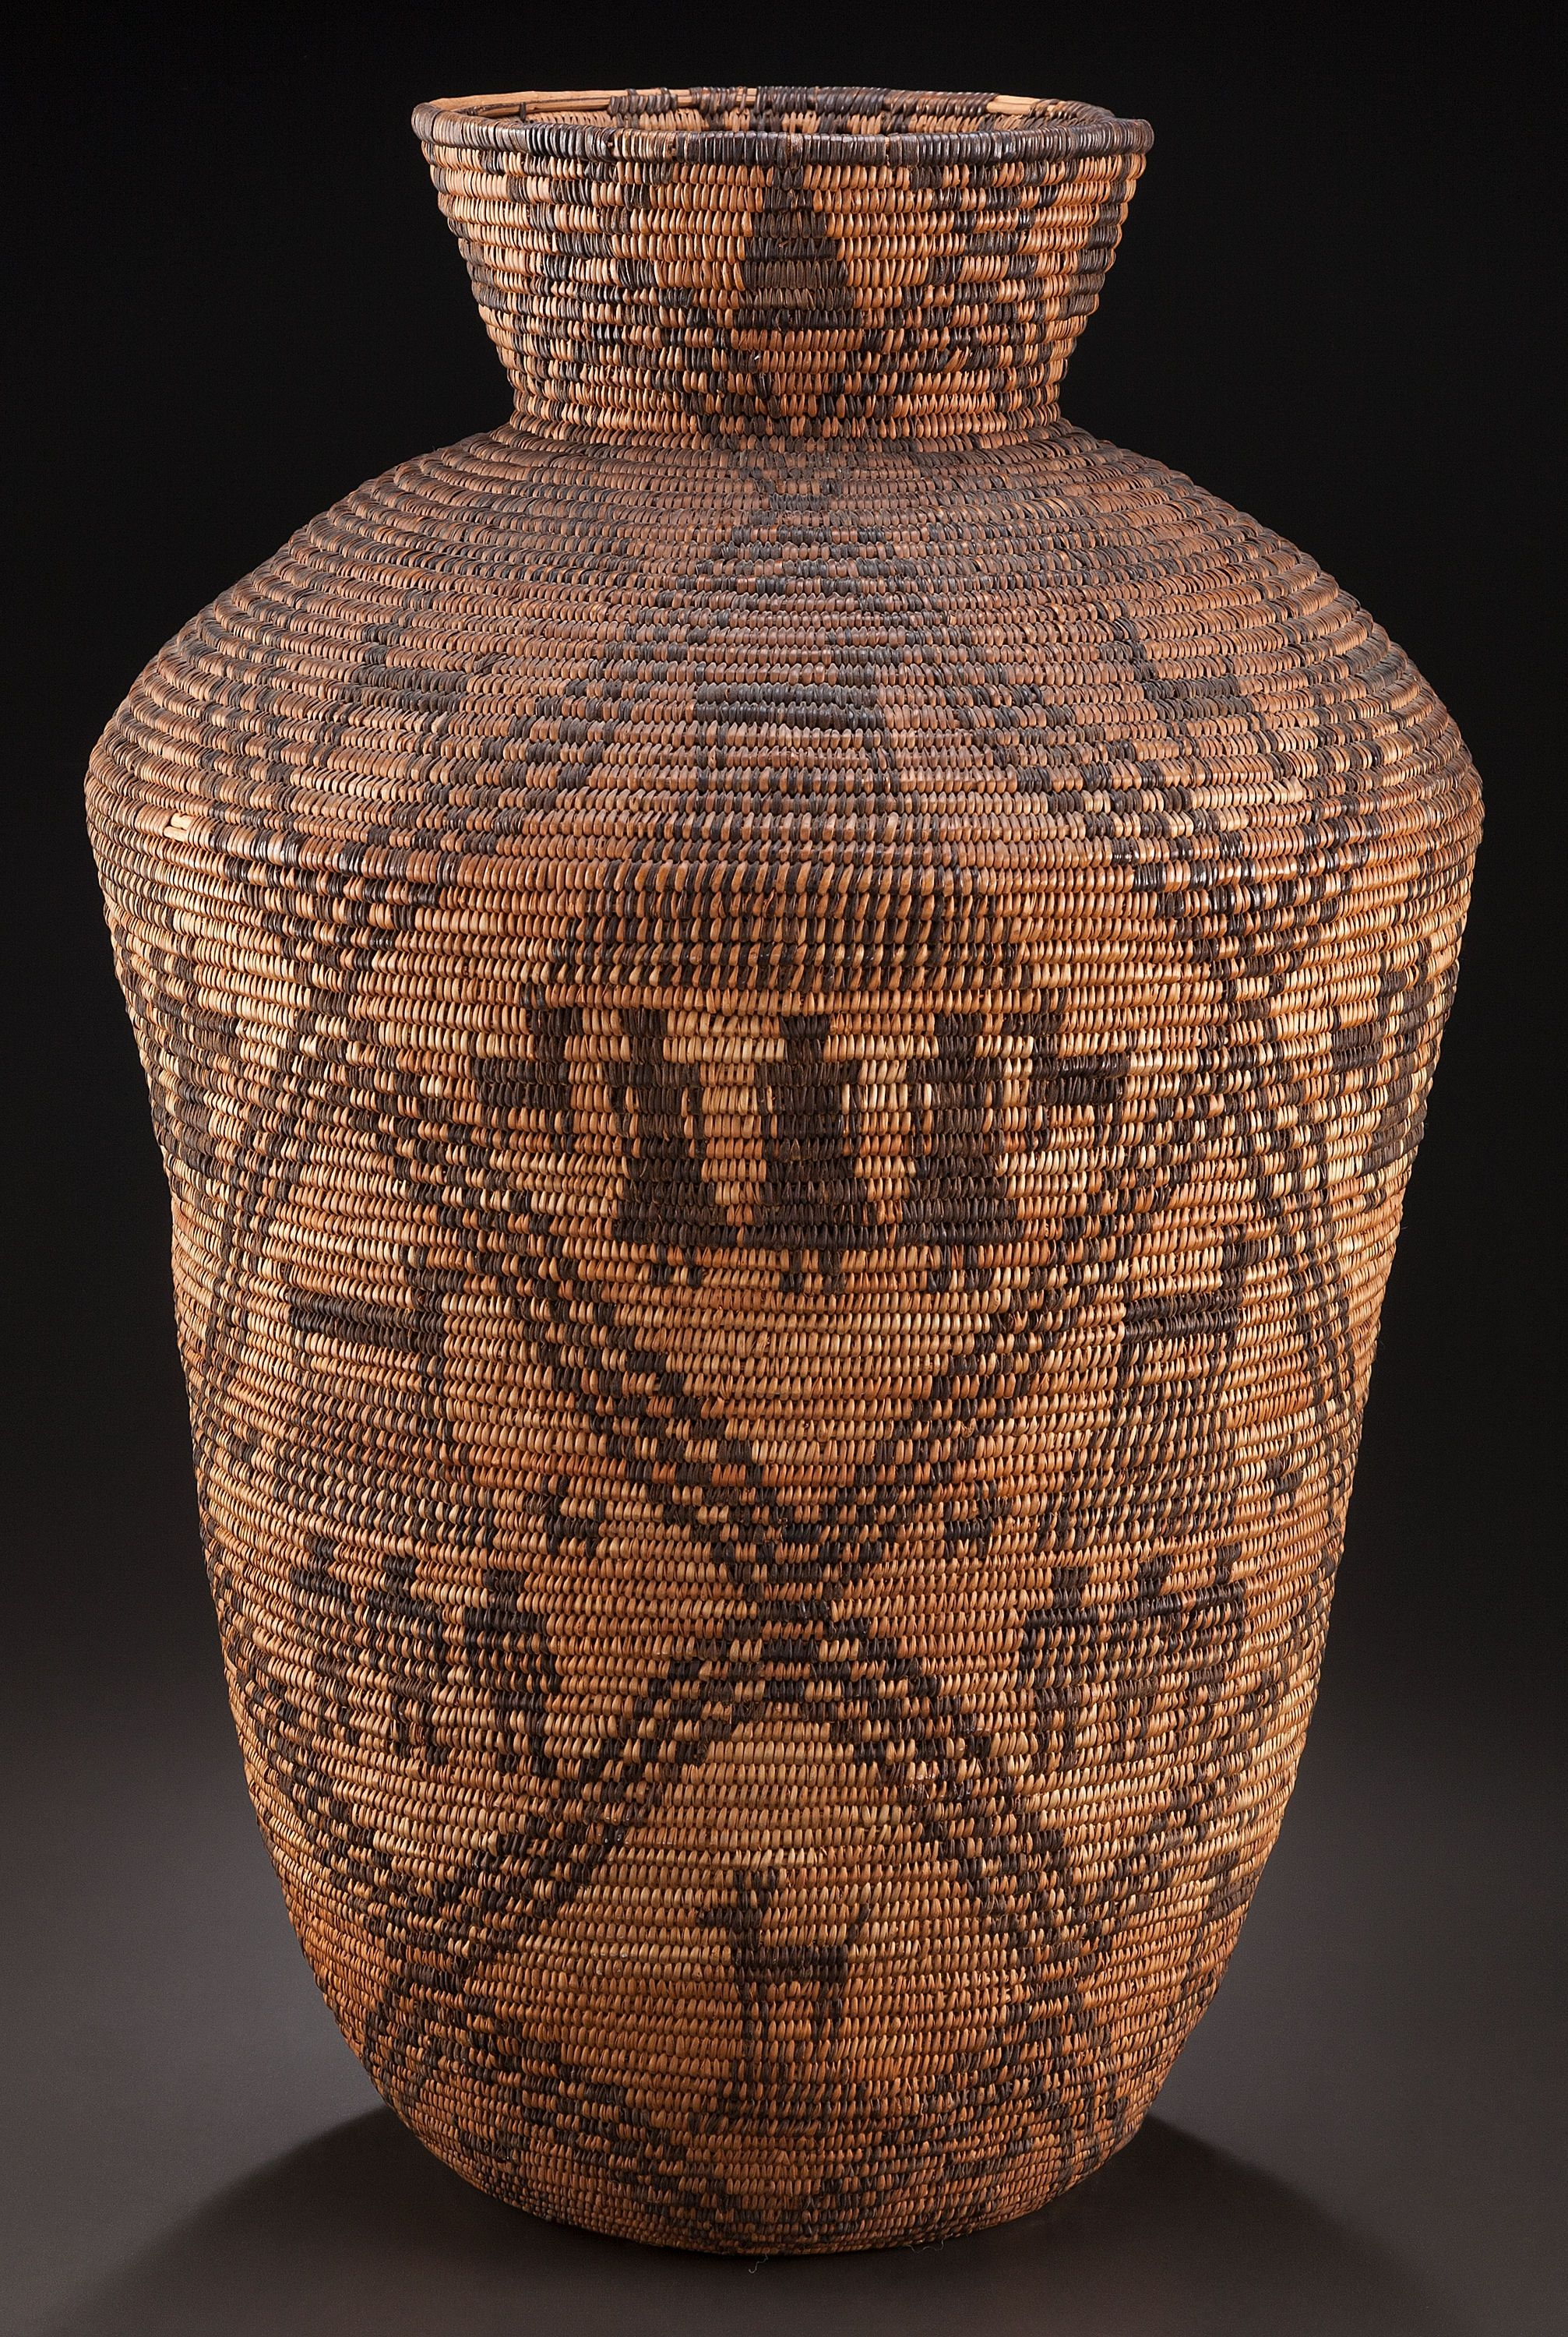 "Unknown Apache artist, Basketry olla, c. 1900, 25"" tall"